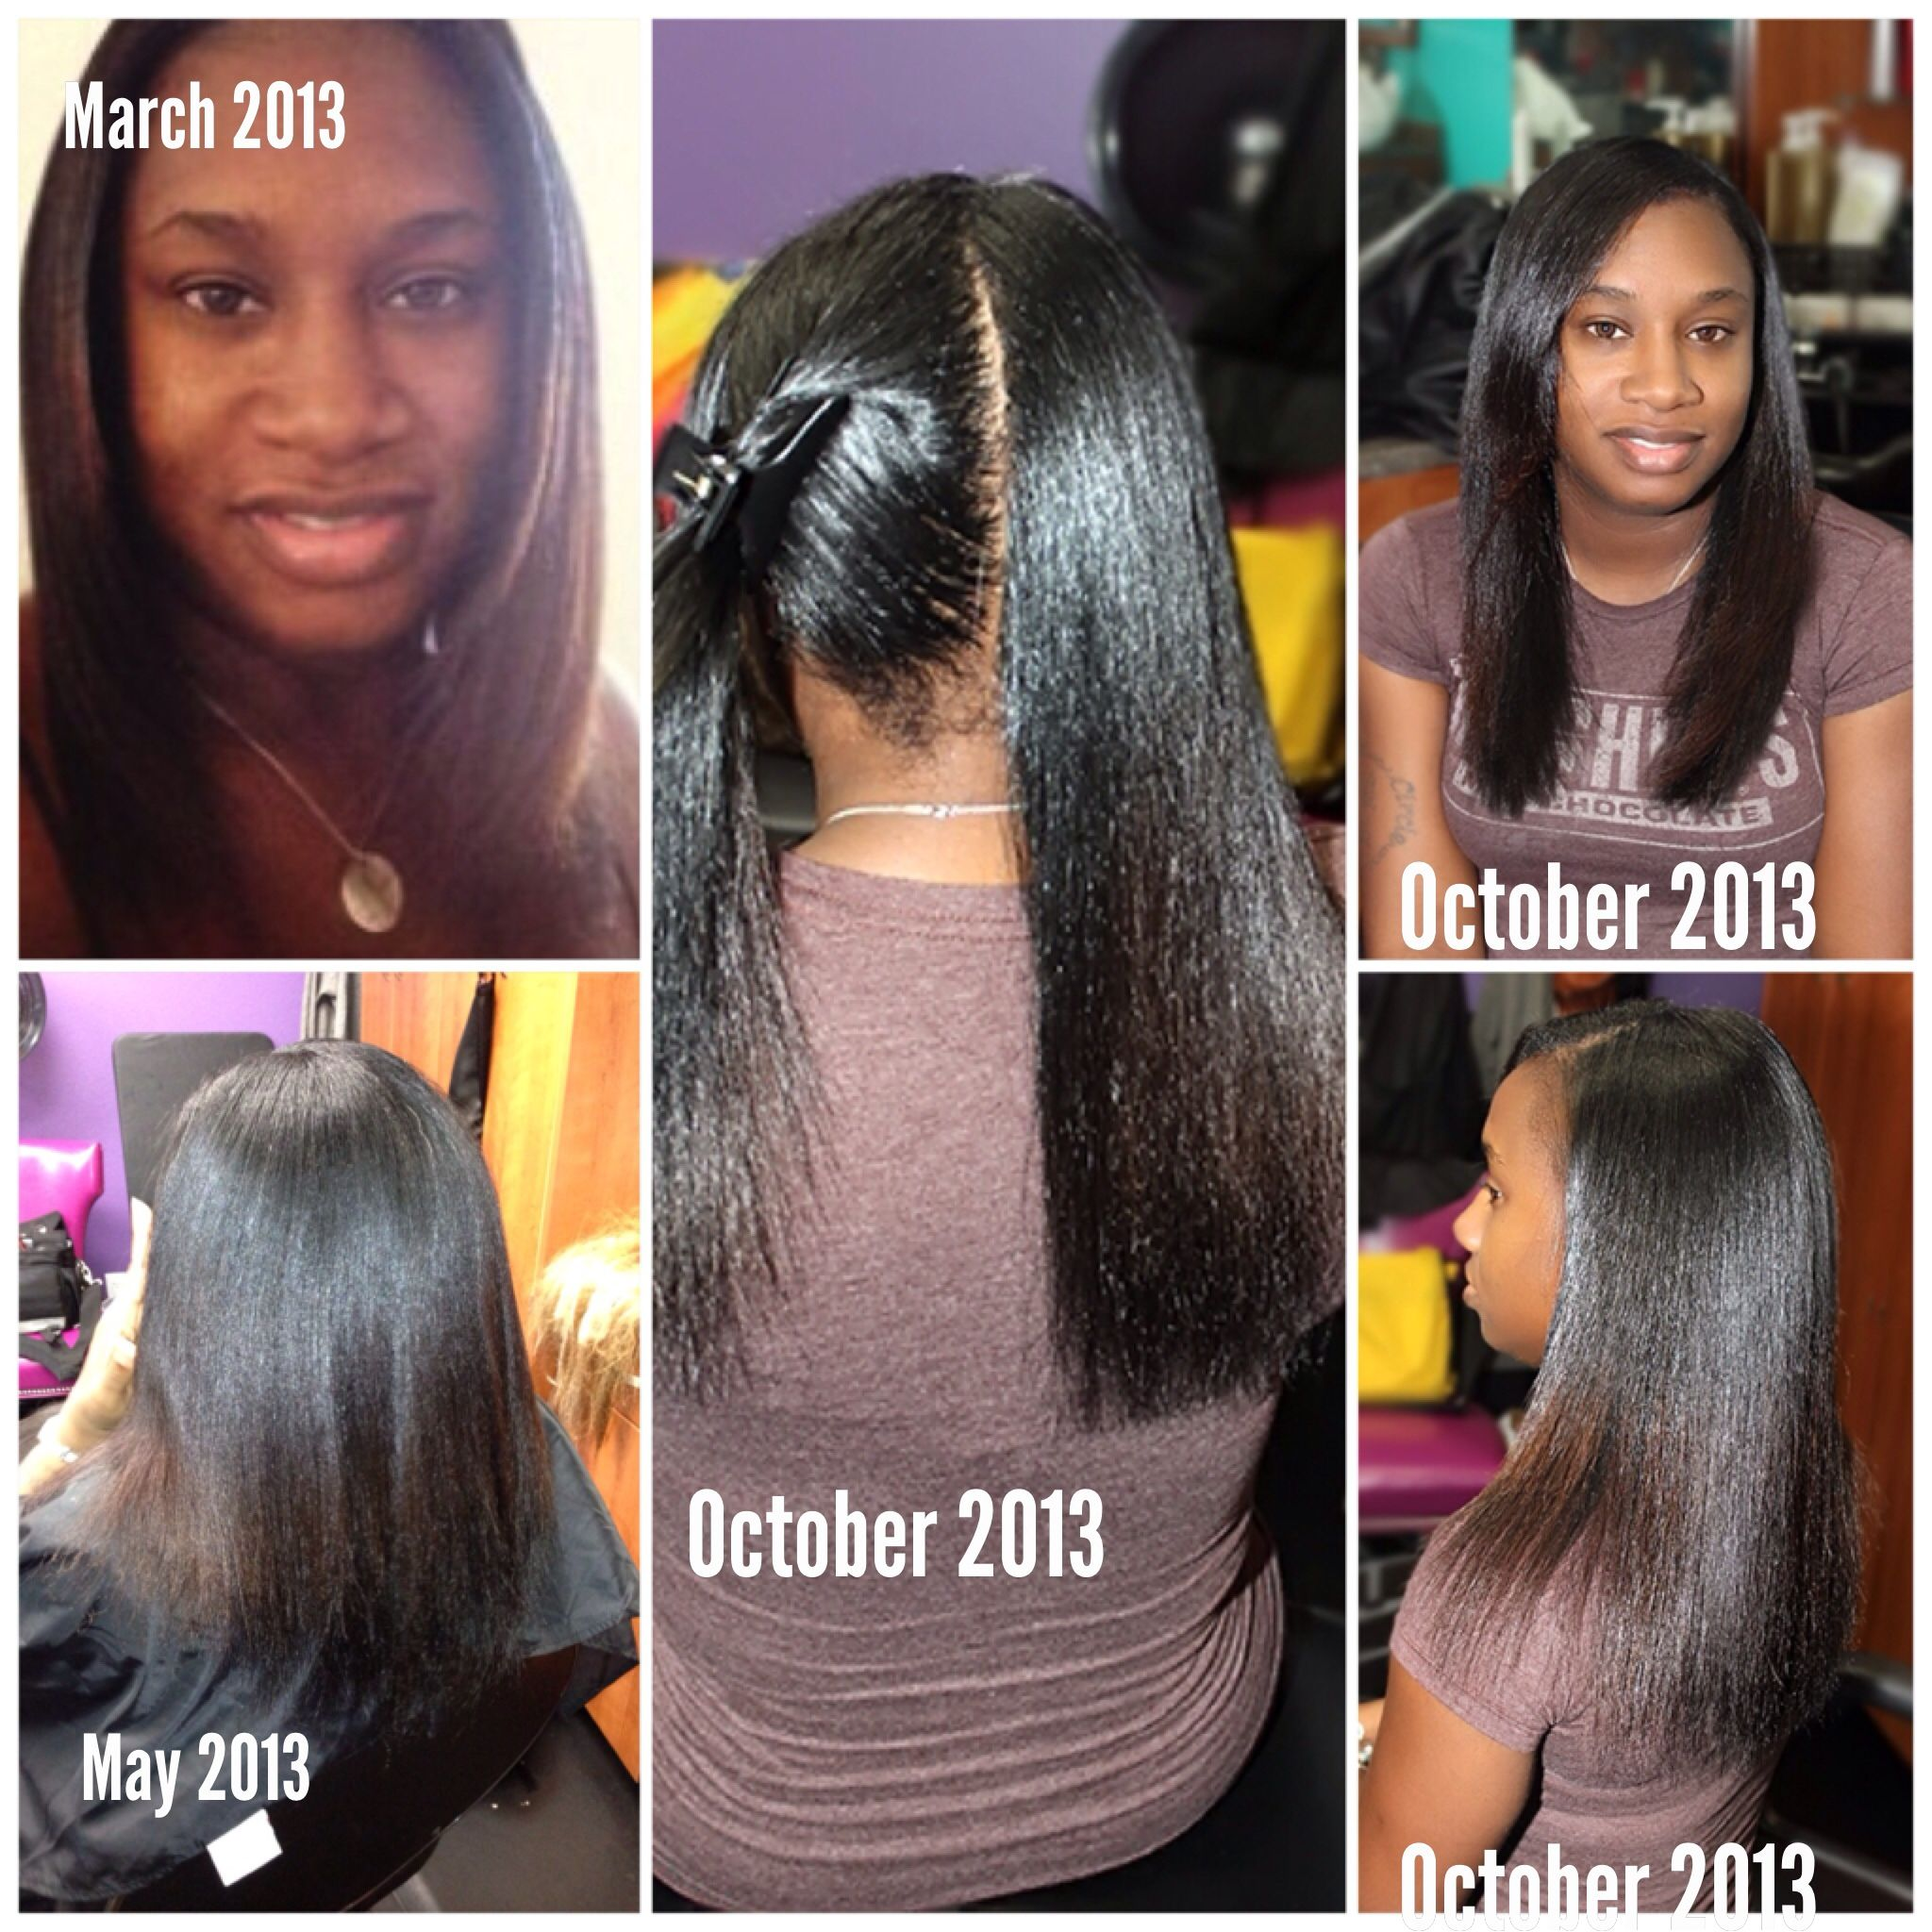 my client has been receiving weaving services (protective styling